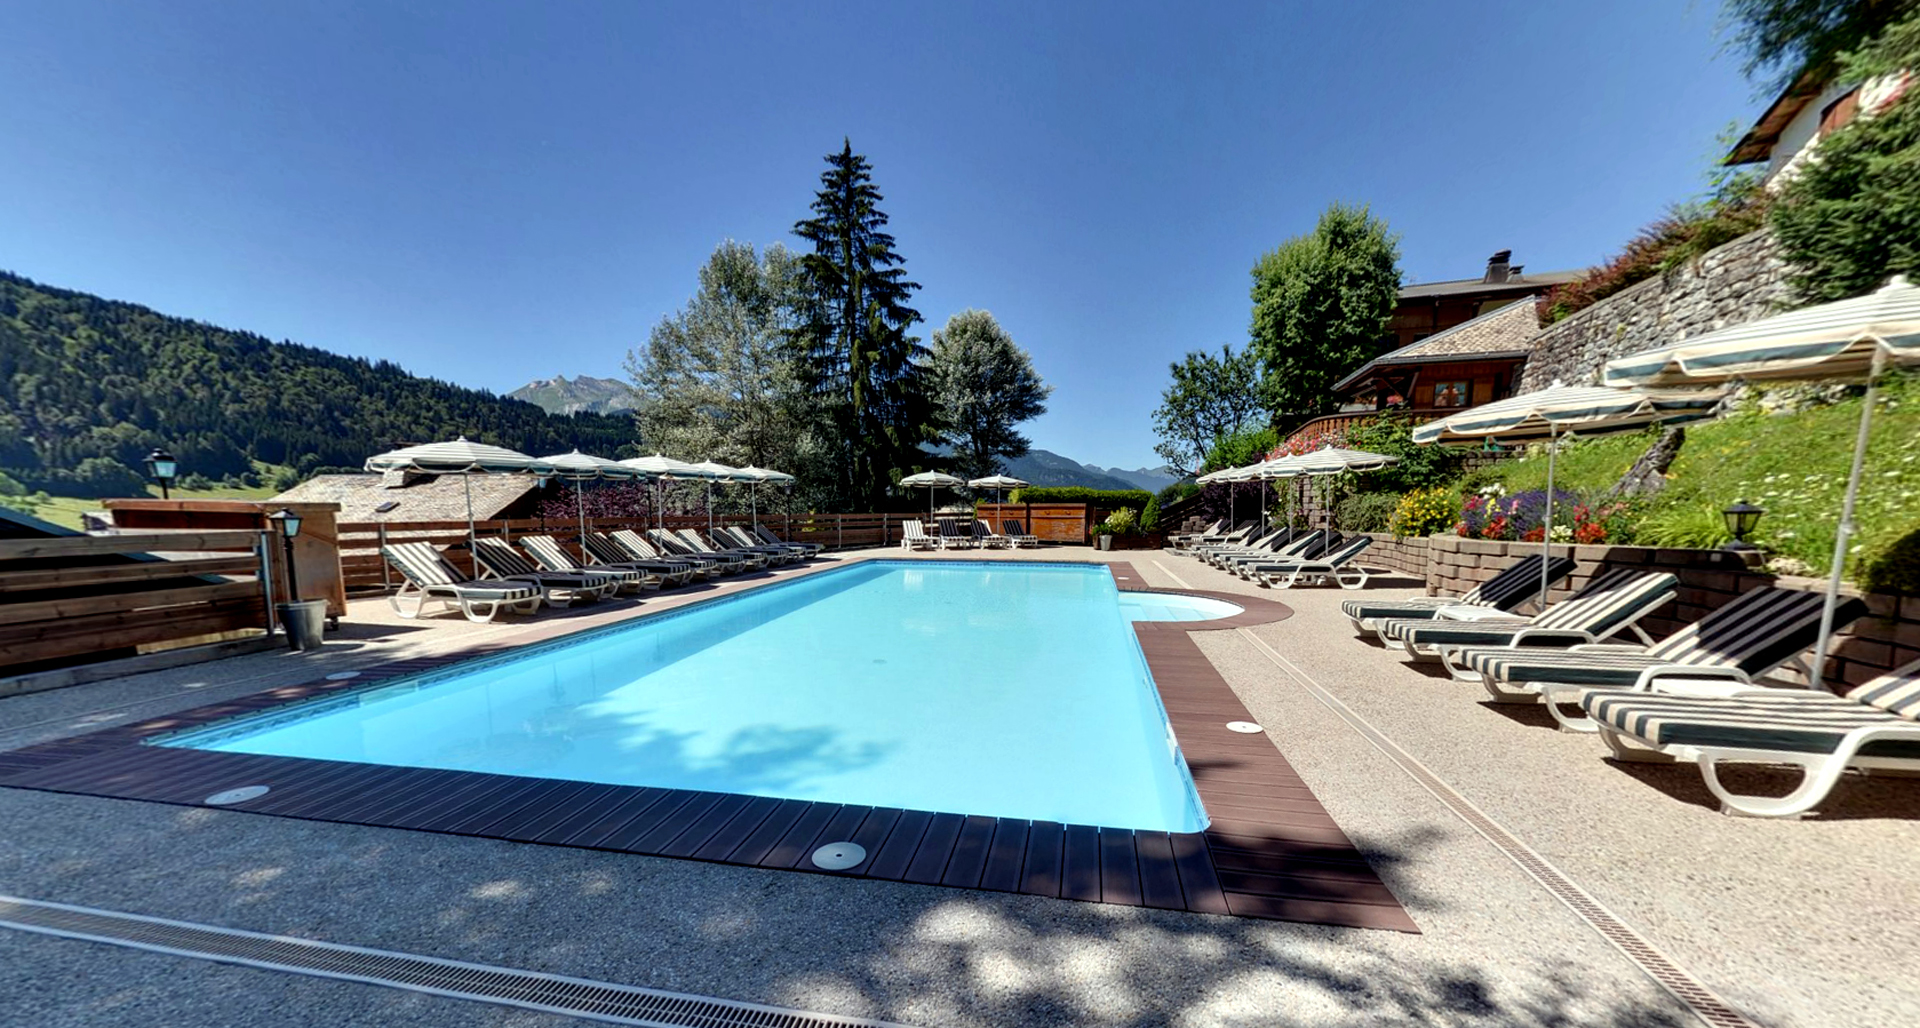 183/Spa/LeDahu_PiscineExt_12_poolside03.jpg